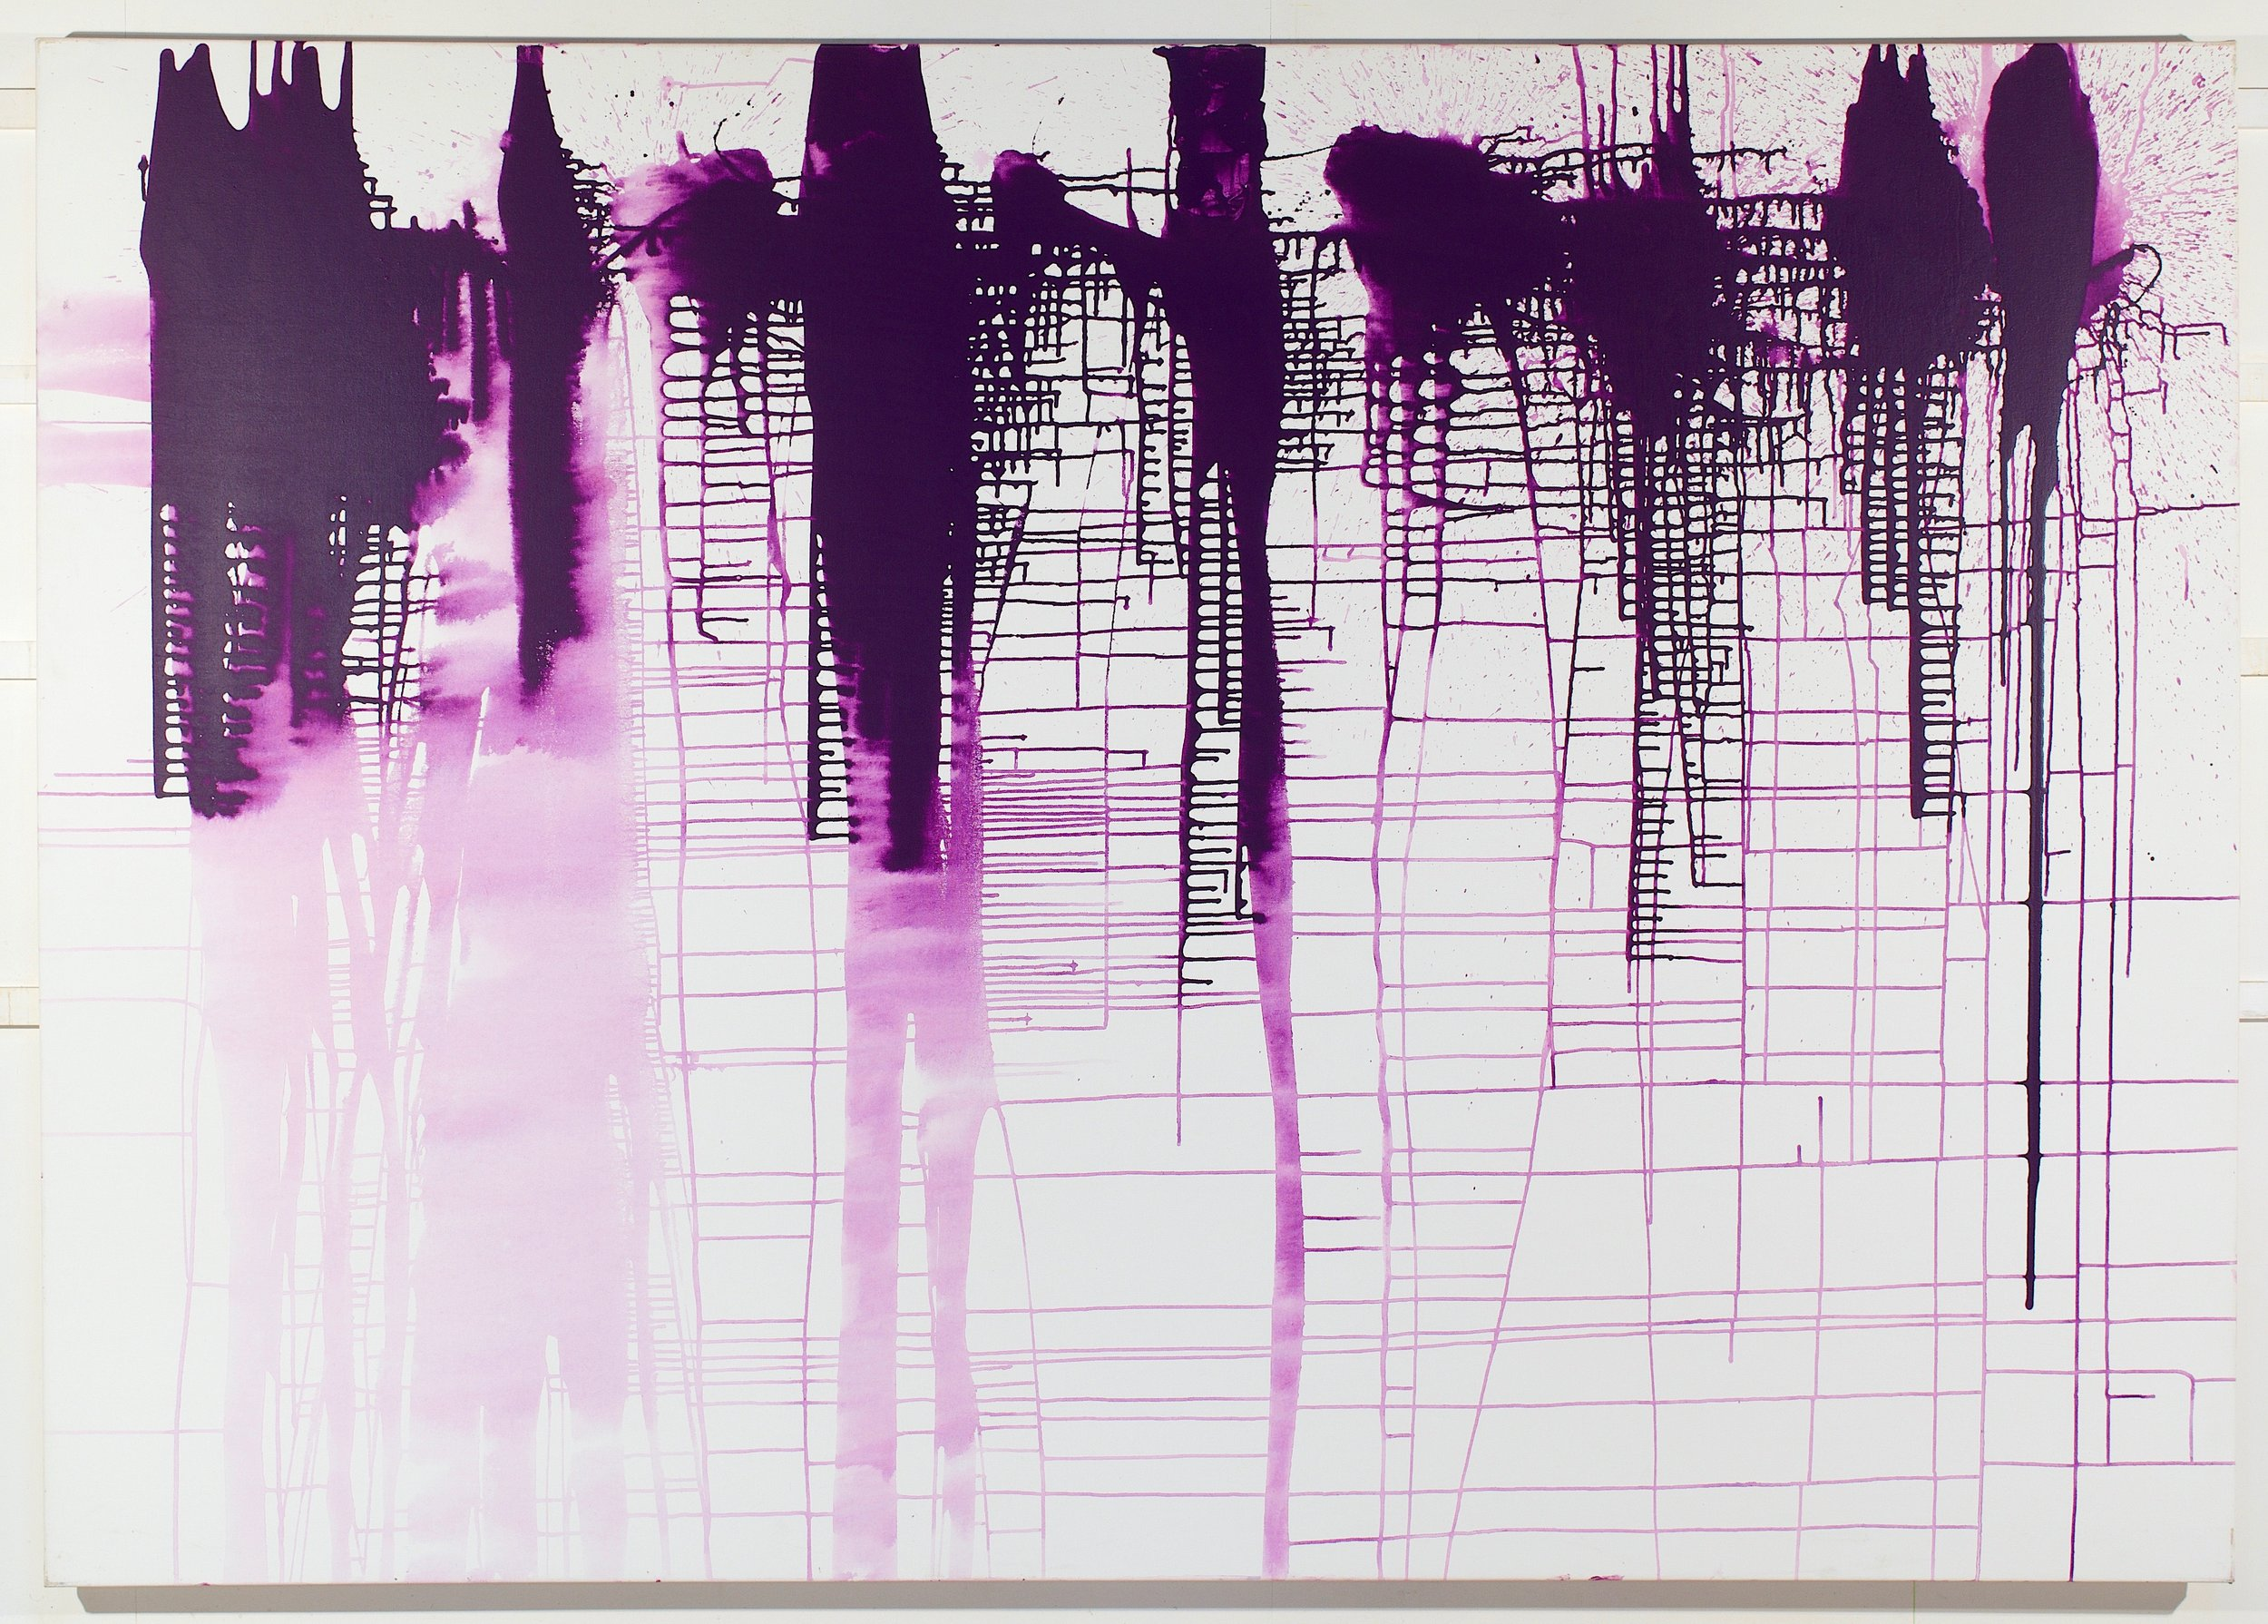 John Perreault. Grape Map, 2013 Acrylic on canvas,  64 x 90 inches